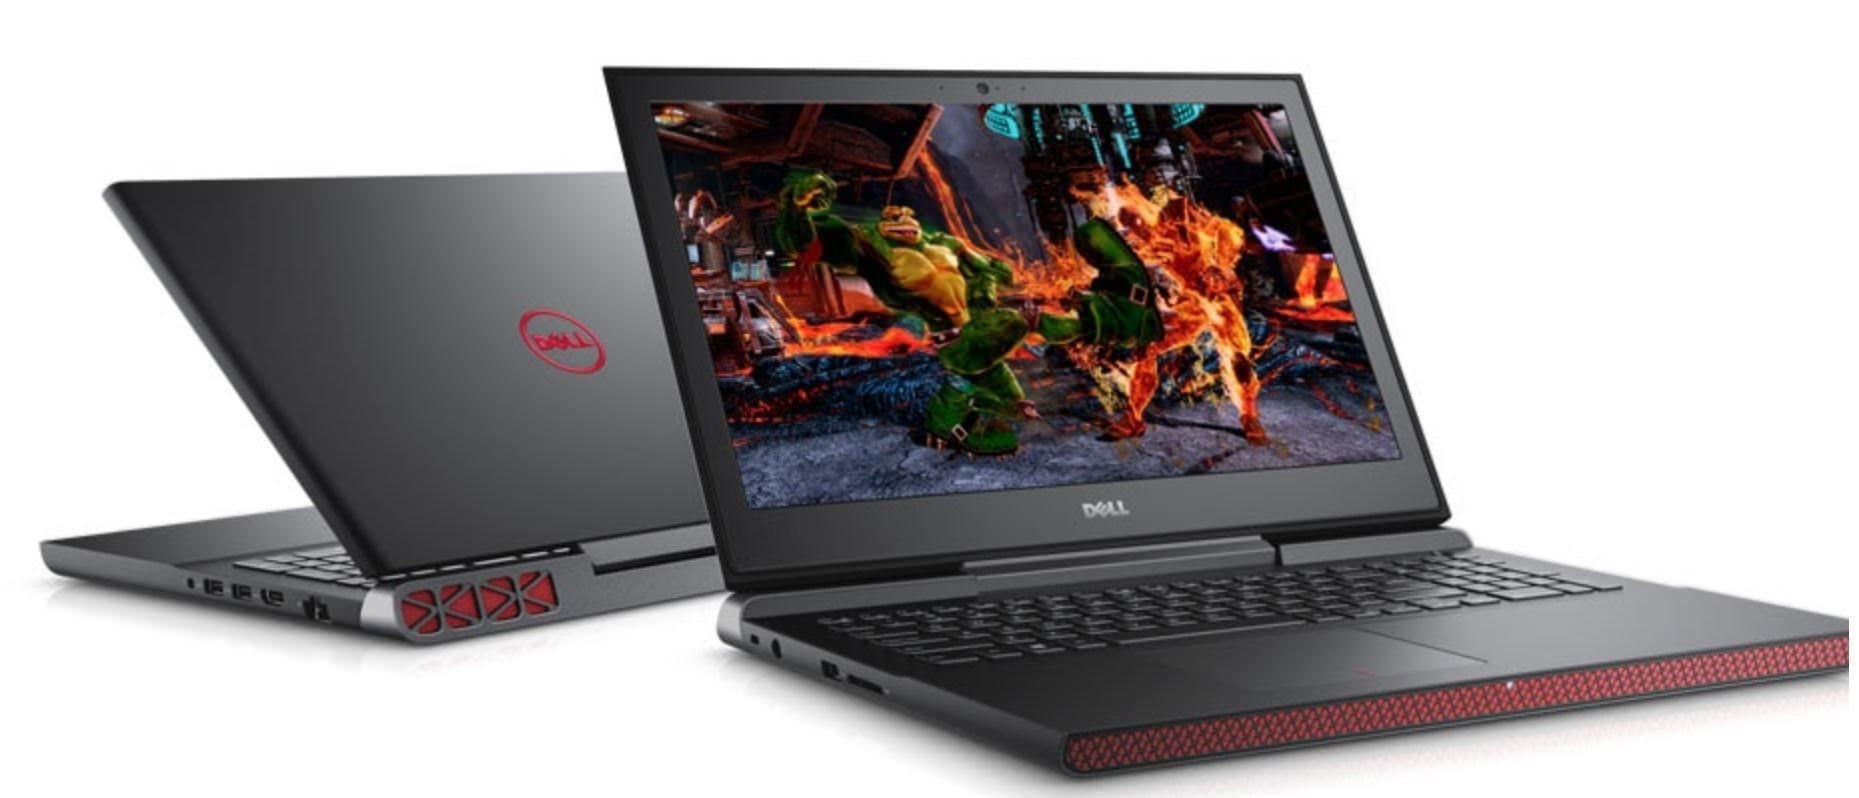 Error 404 Share Your Business Story On Thoko Advertorials Dell Inspiron 15 Dell Inspiron Laptop